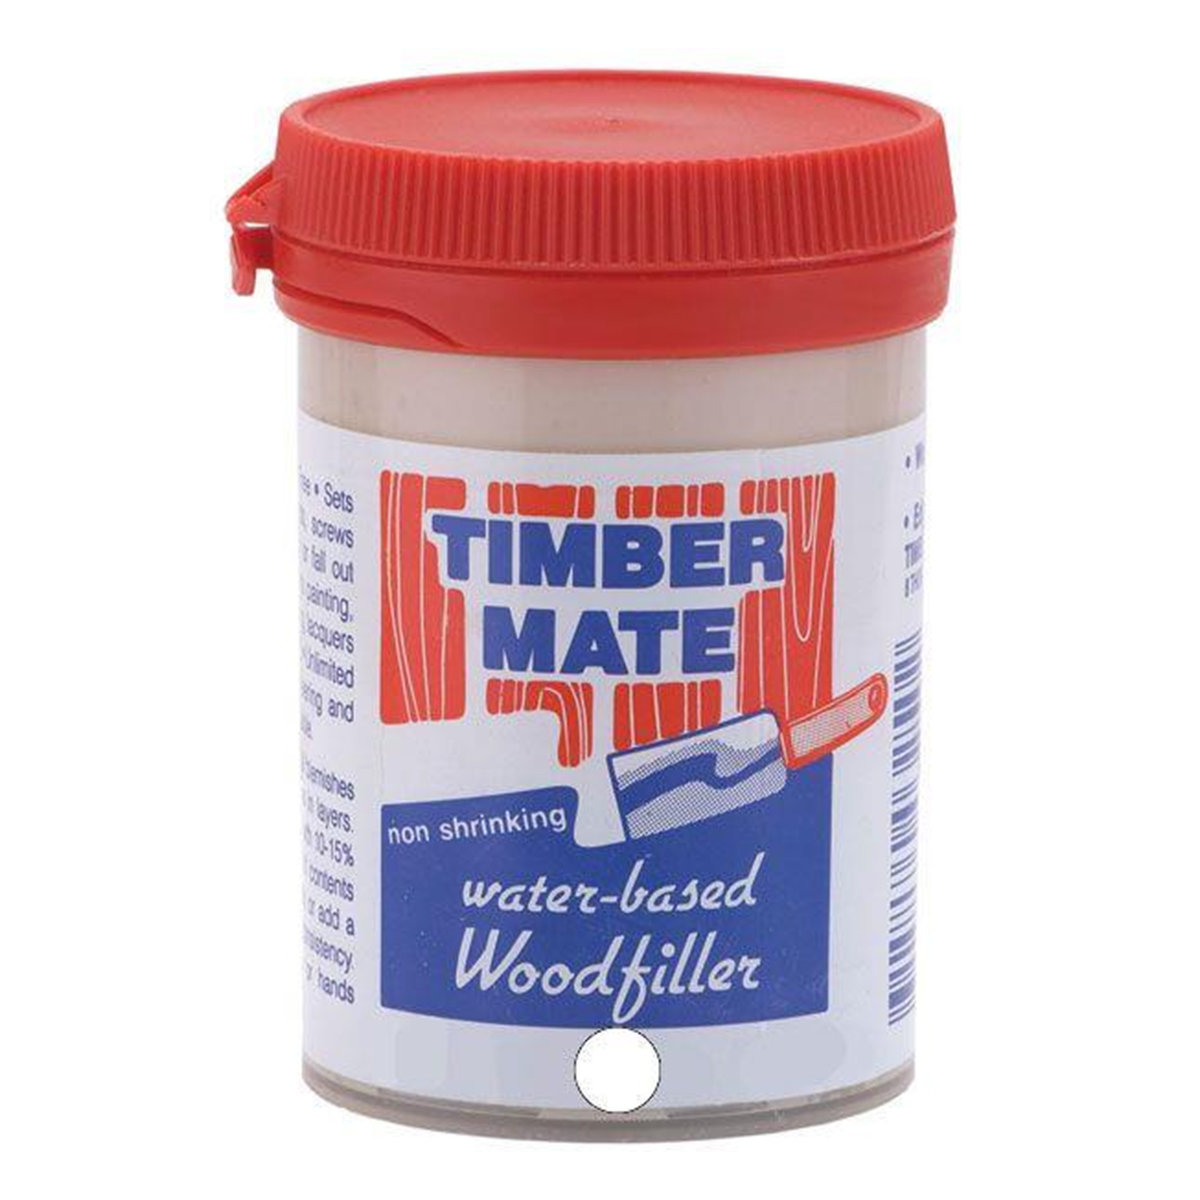 Timber Mate Water Based Wood Filler